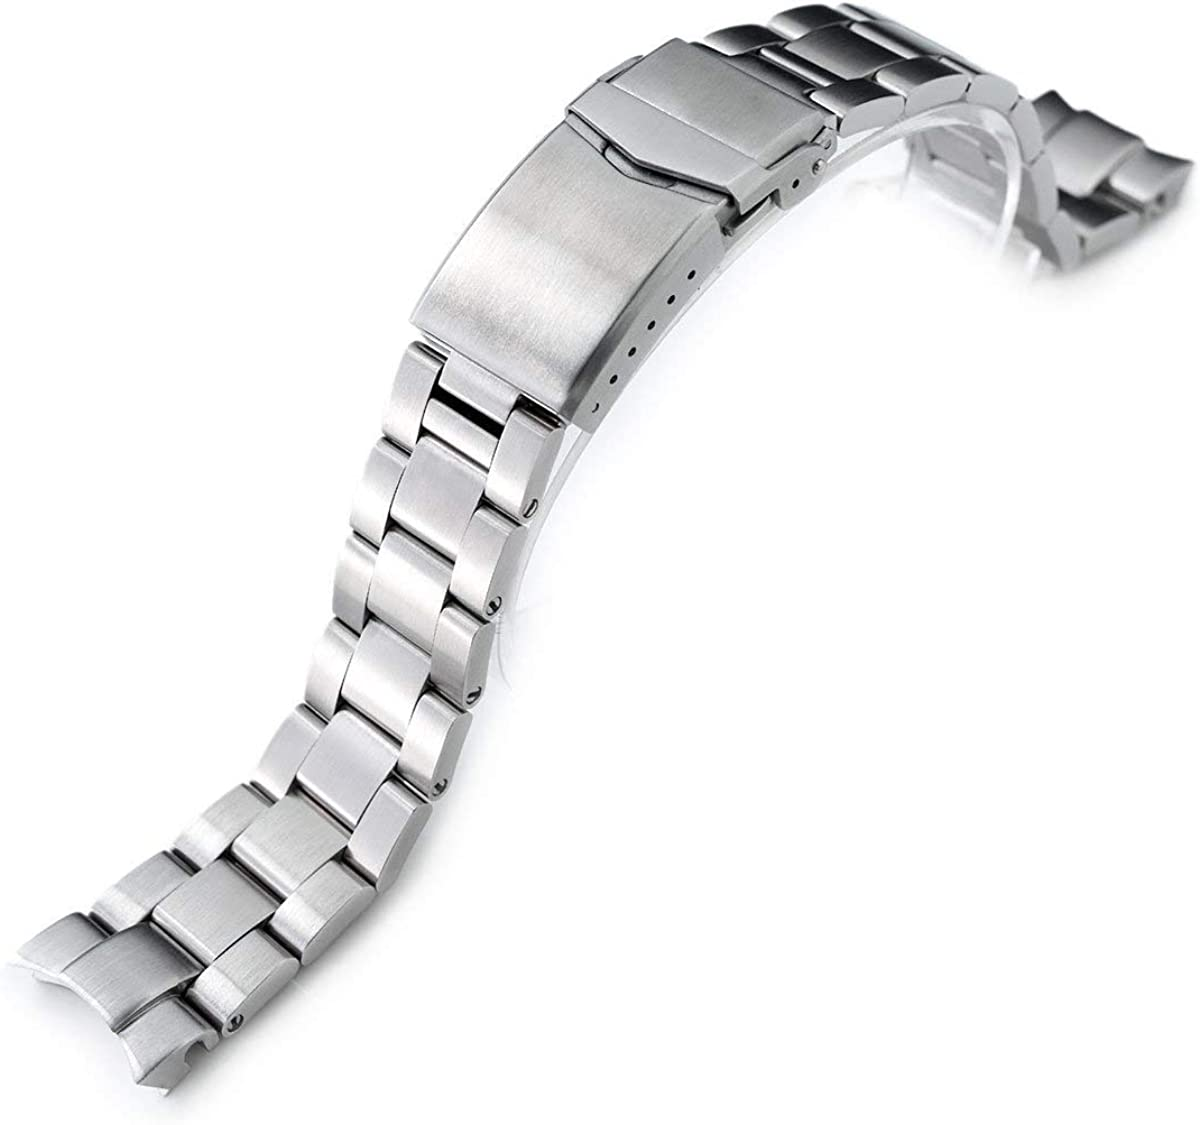 MiLTAT 20mm Watch Band for Scre Super-O Large discharge sale All items in the store Seiko SARB017 Alpinist